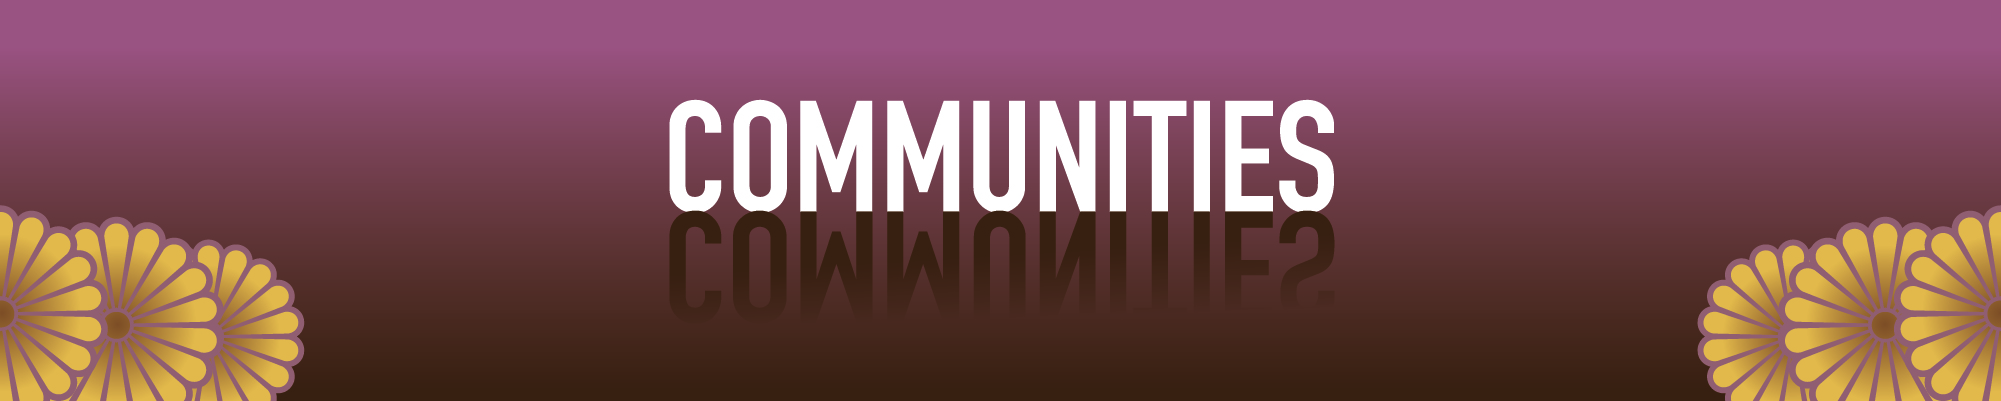 Section Title - Communities